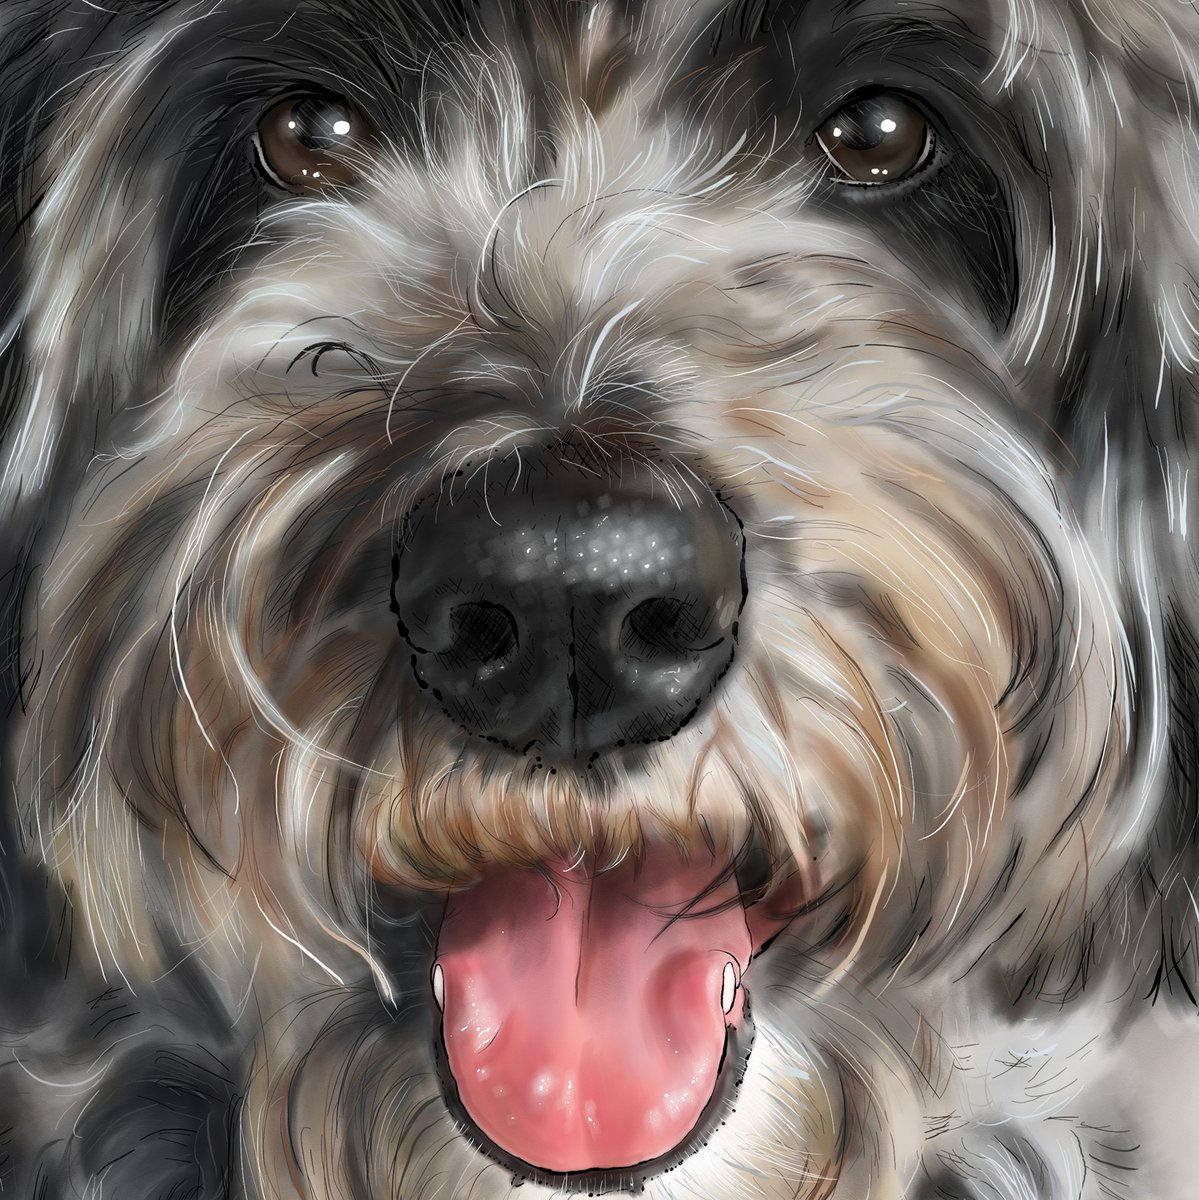 Digital or watercolour, each has its appeal 🎨💎 I've been doing a few more watercolours lately, but these portraits are digital. I love both! #dogsoftwitter #faces #boop